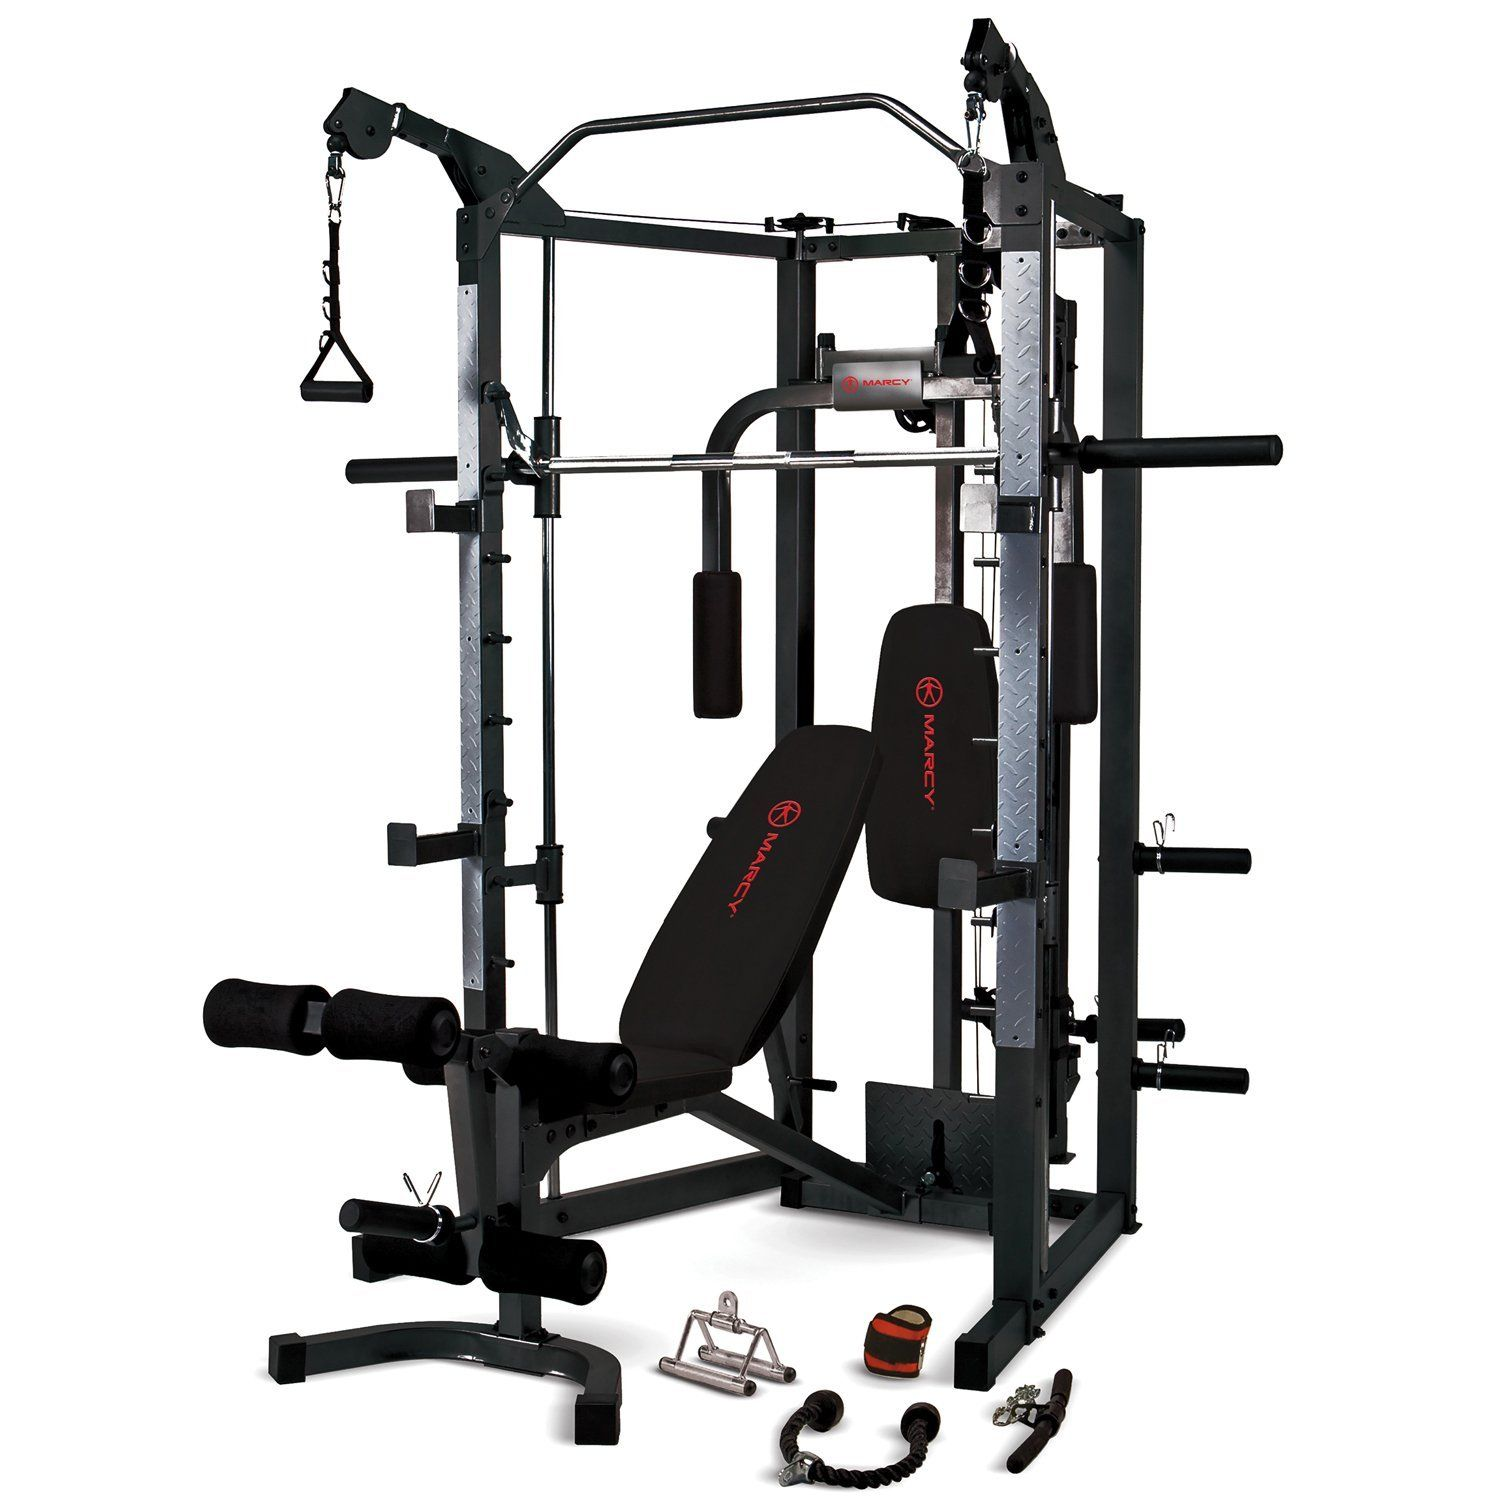 The ☛☛ Marcy Eclipse RS7000 Deluxe Smith Machine Gym Review ...